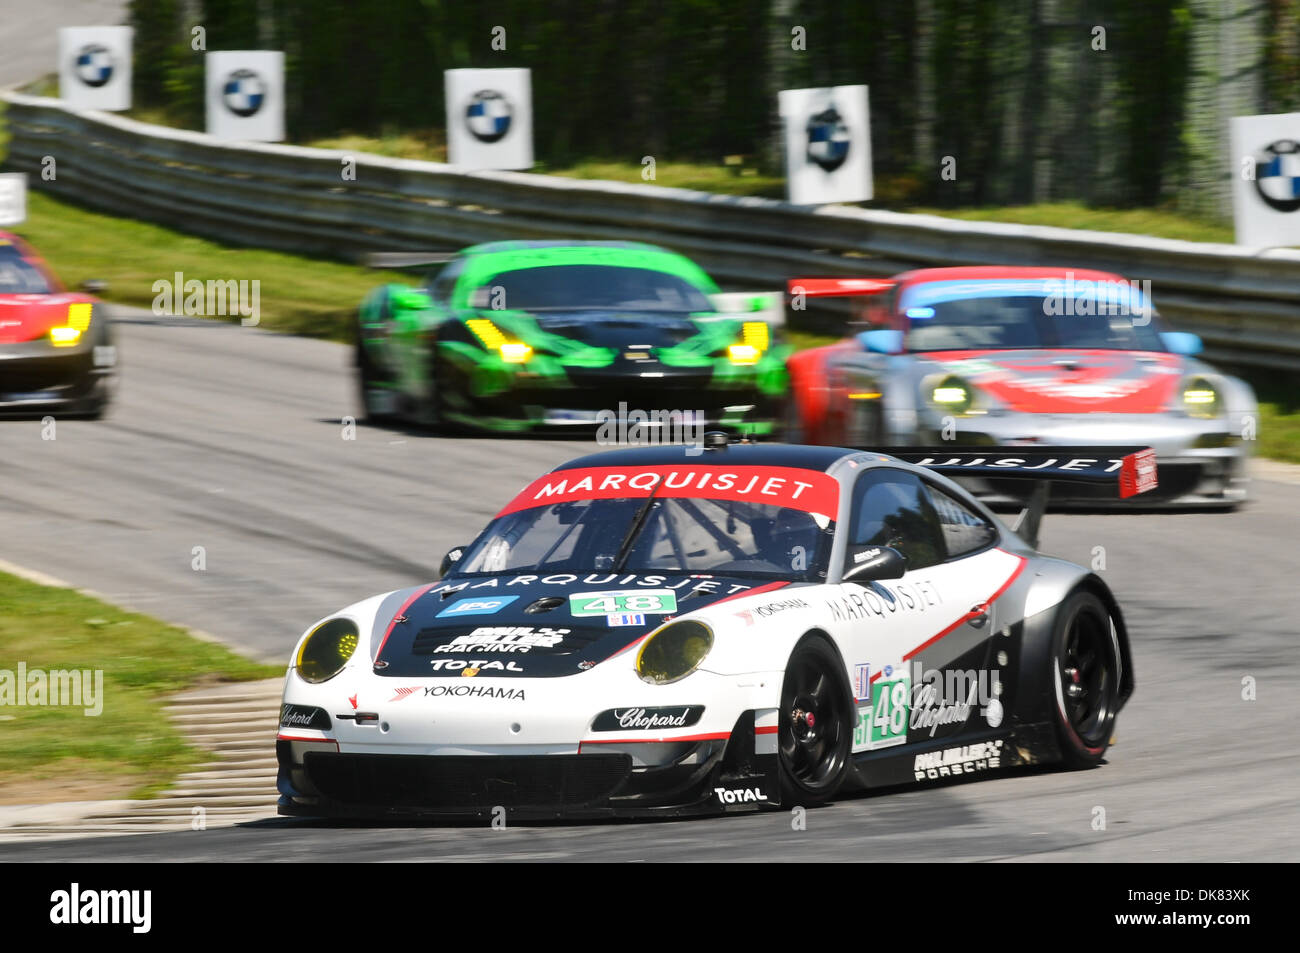 July 9, 2011 - Lakeville, Connecticut, U.S - The #48 Paul Miller Racing driven by Bryce Miller and Sascha Maassen turns into the uphill climb during the ALMS Northeast Grand Prix at Lime Rock Park. (Credit Image: © Geoff Bolte/Southcreek Global/ZUMAPRESS.com) - Stock Image